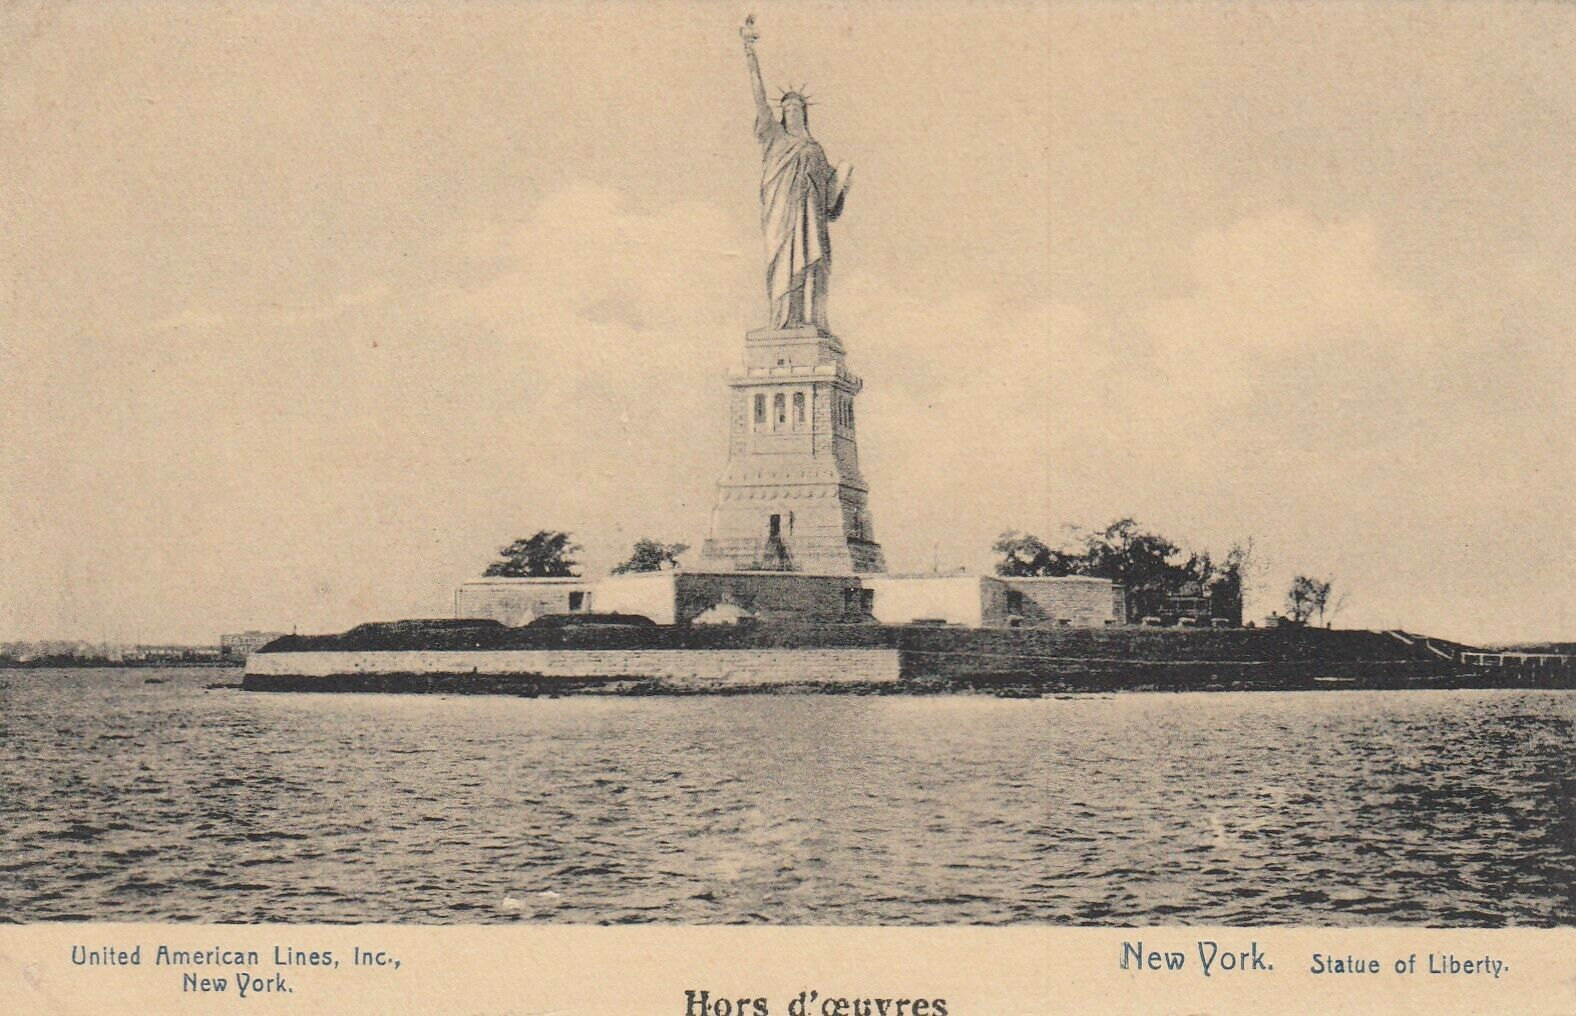 New York City 1920s Statue Of Liberty United American Lines Inc Ny Card Hippostcard